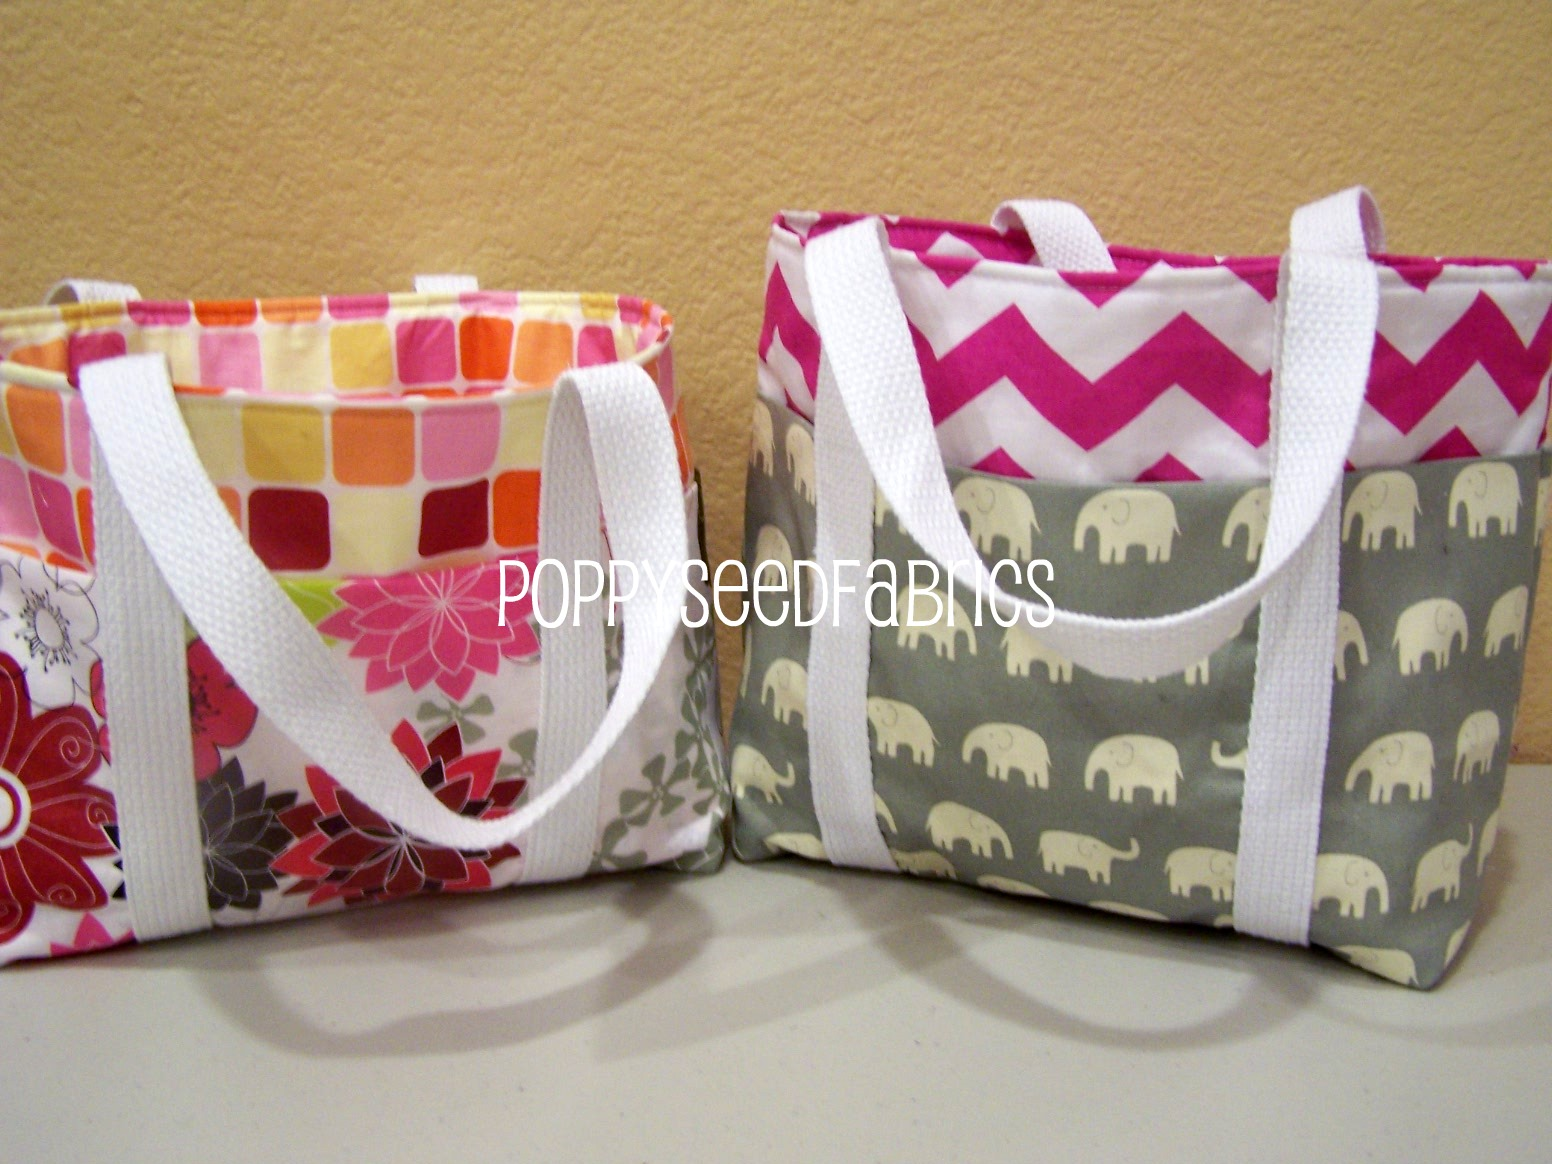 poppyseed fabrics super easy tote bag tutorial updated. Black Bedroom Furniture Sets. Home Design Ideas